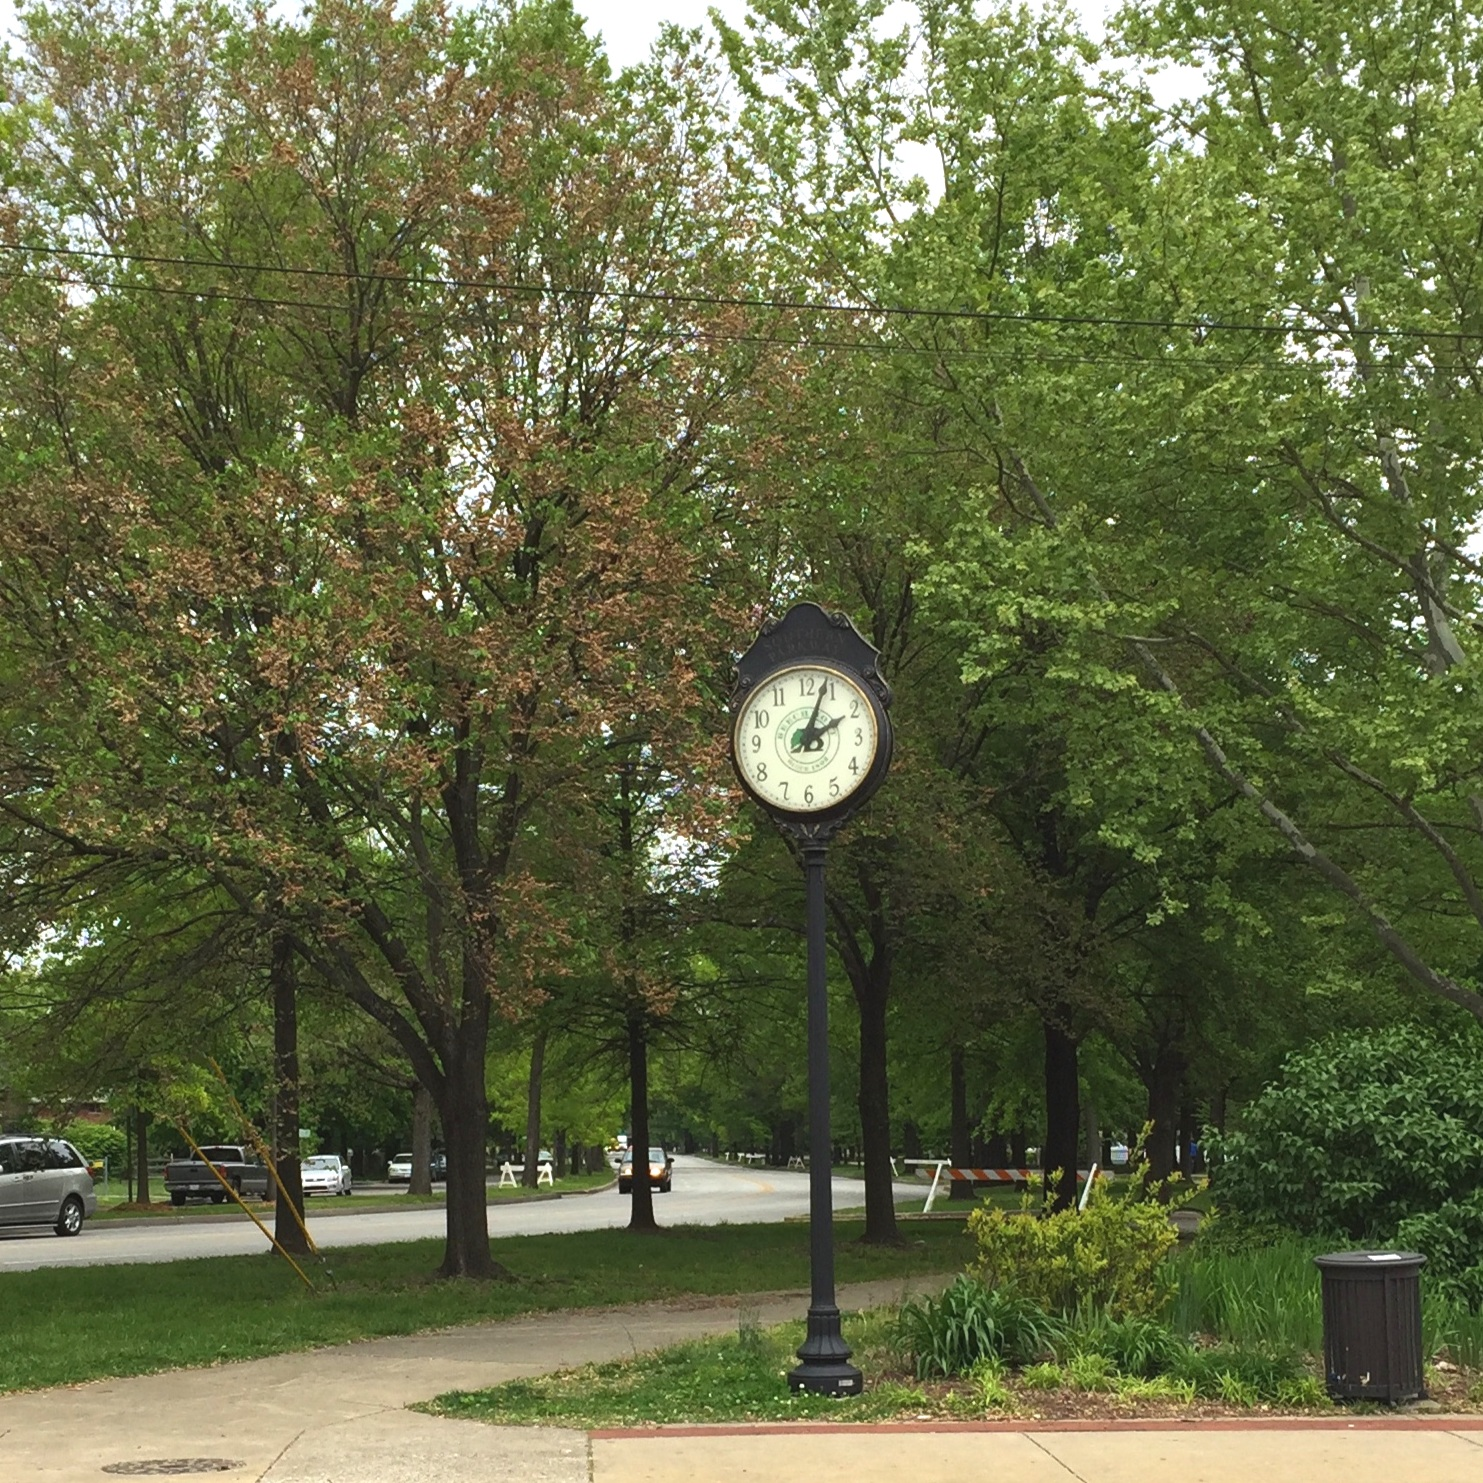 The clock at Woodlawn Avenue and Southern Parkway